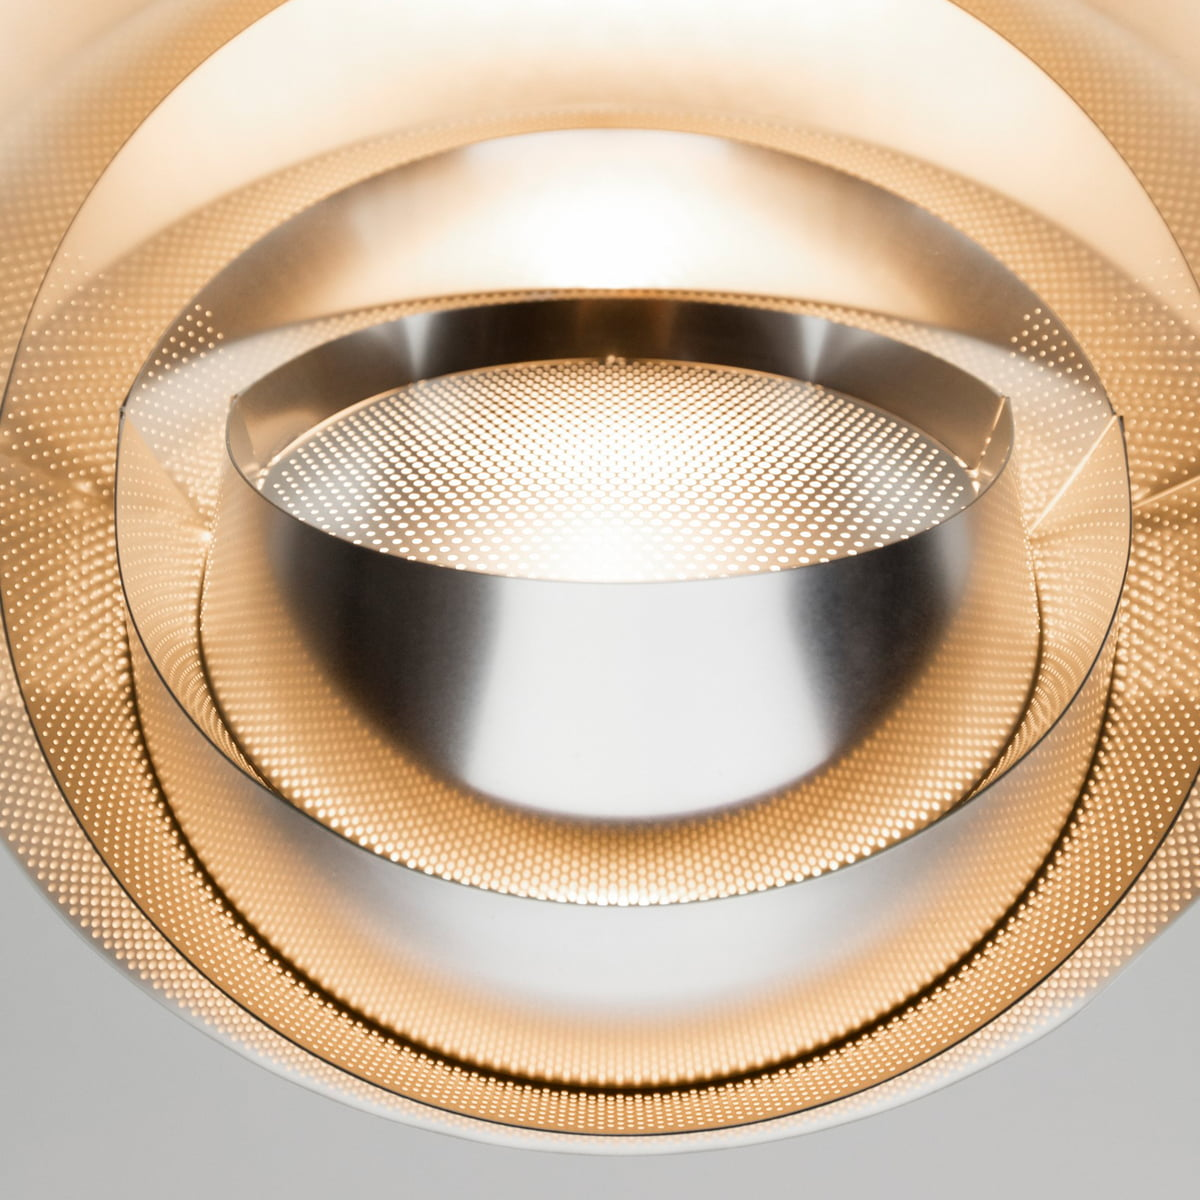 The Tom Dixon   Curve Wall Lamp